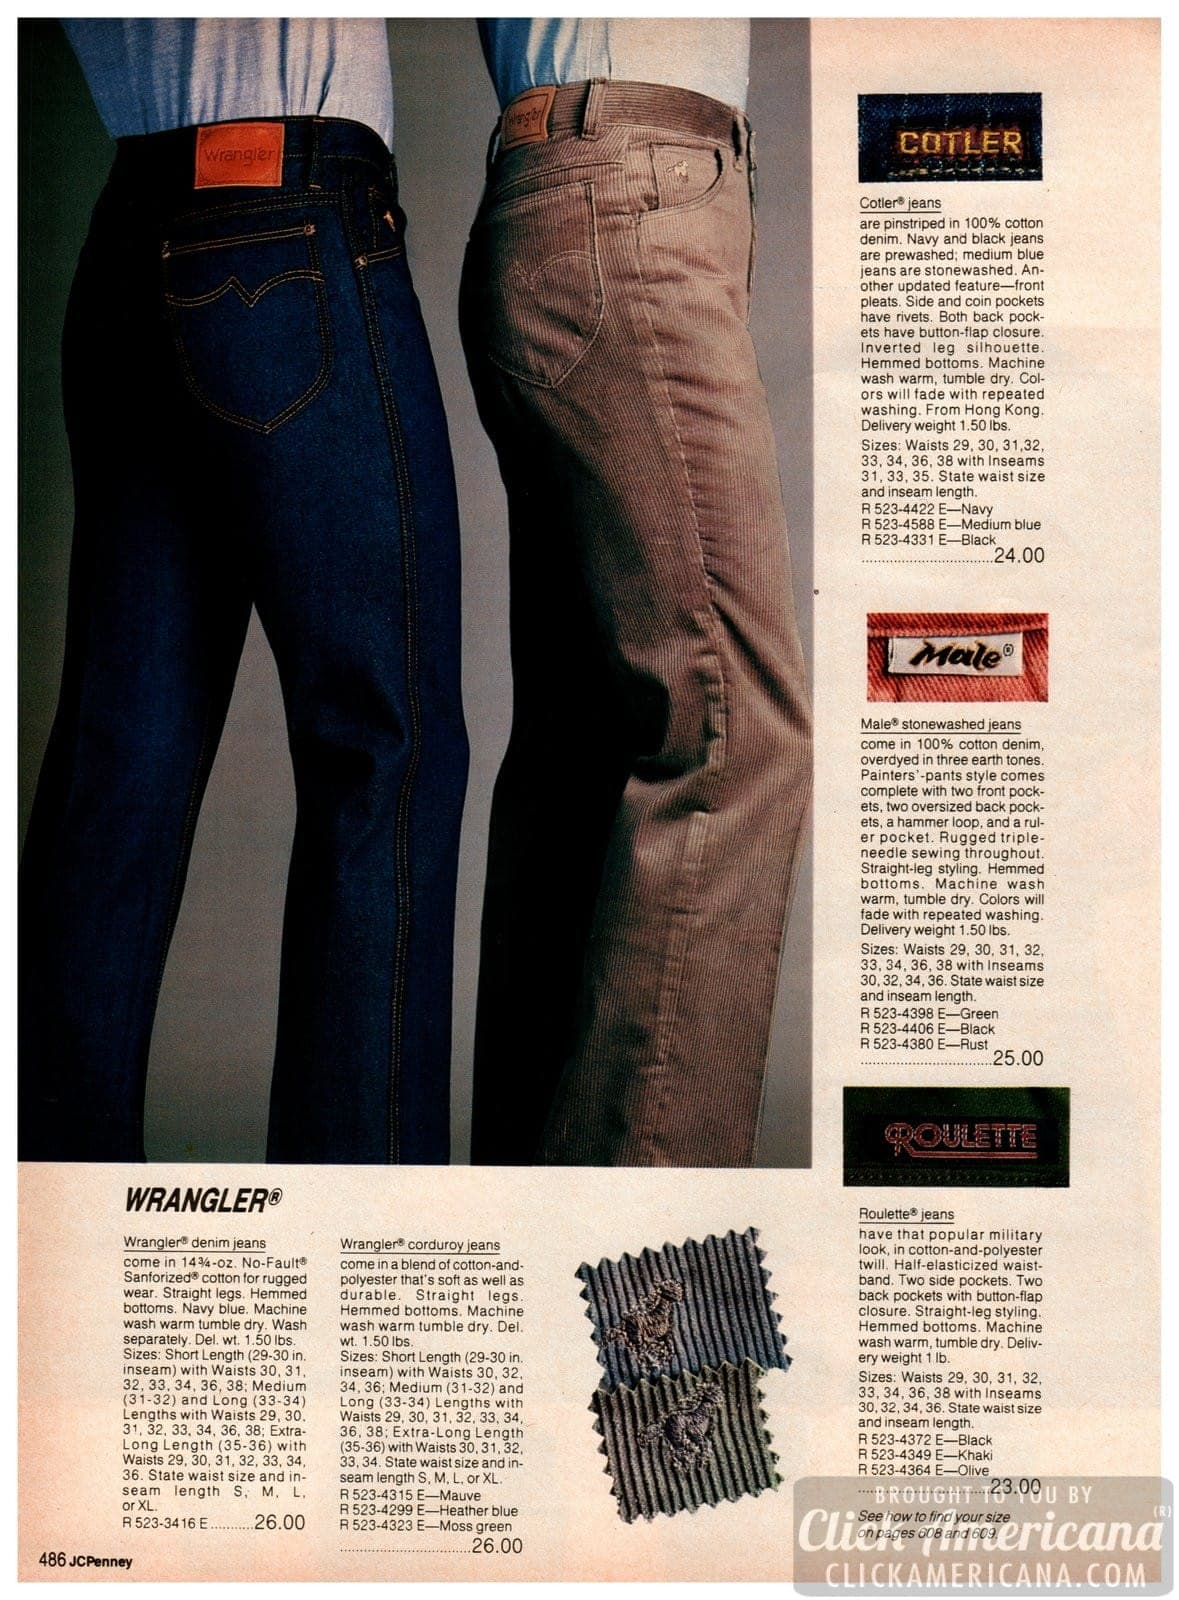 '80s Wrangler denim jeans and corduroy jeans